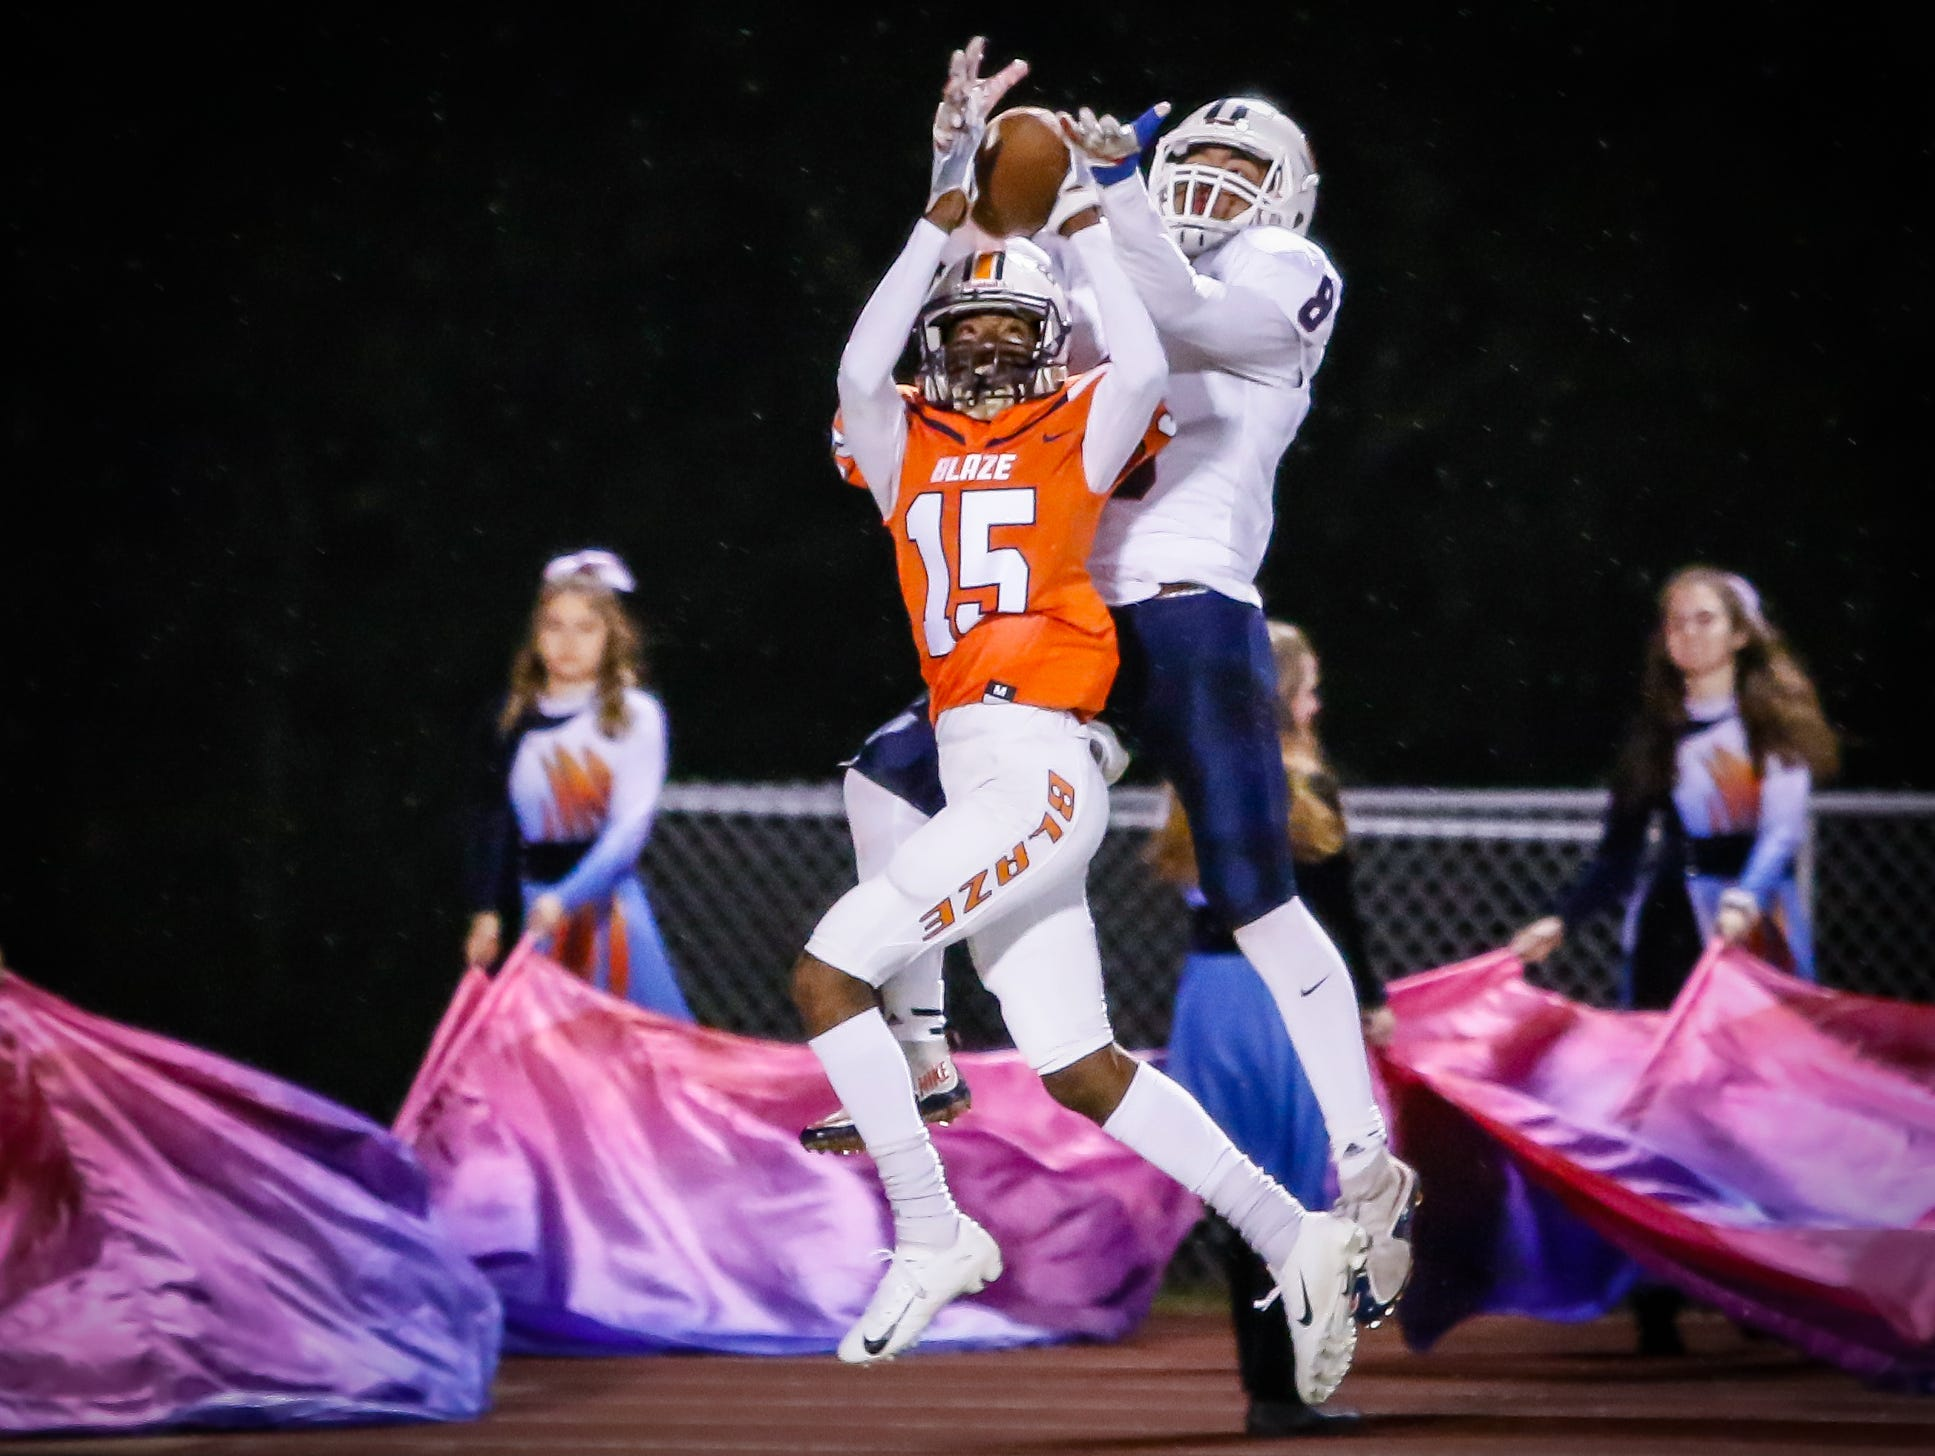 Blackman's Camden Williams and Cookeville's Brayden Nivens battle for a pass late in the first half.